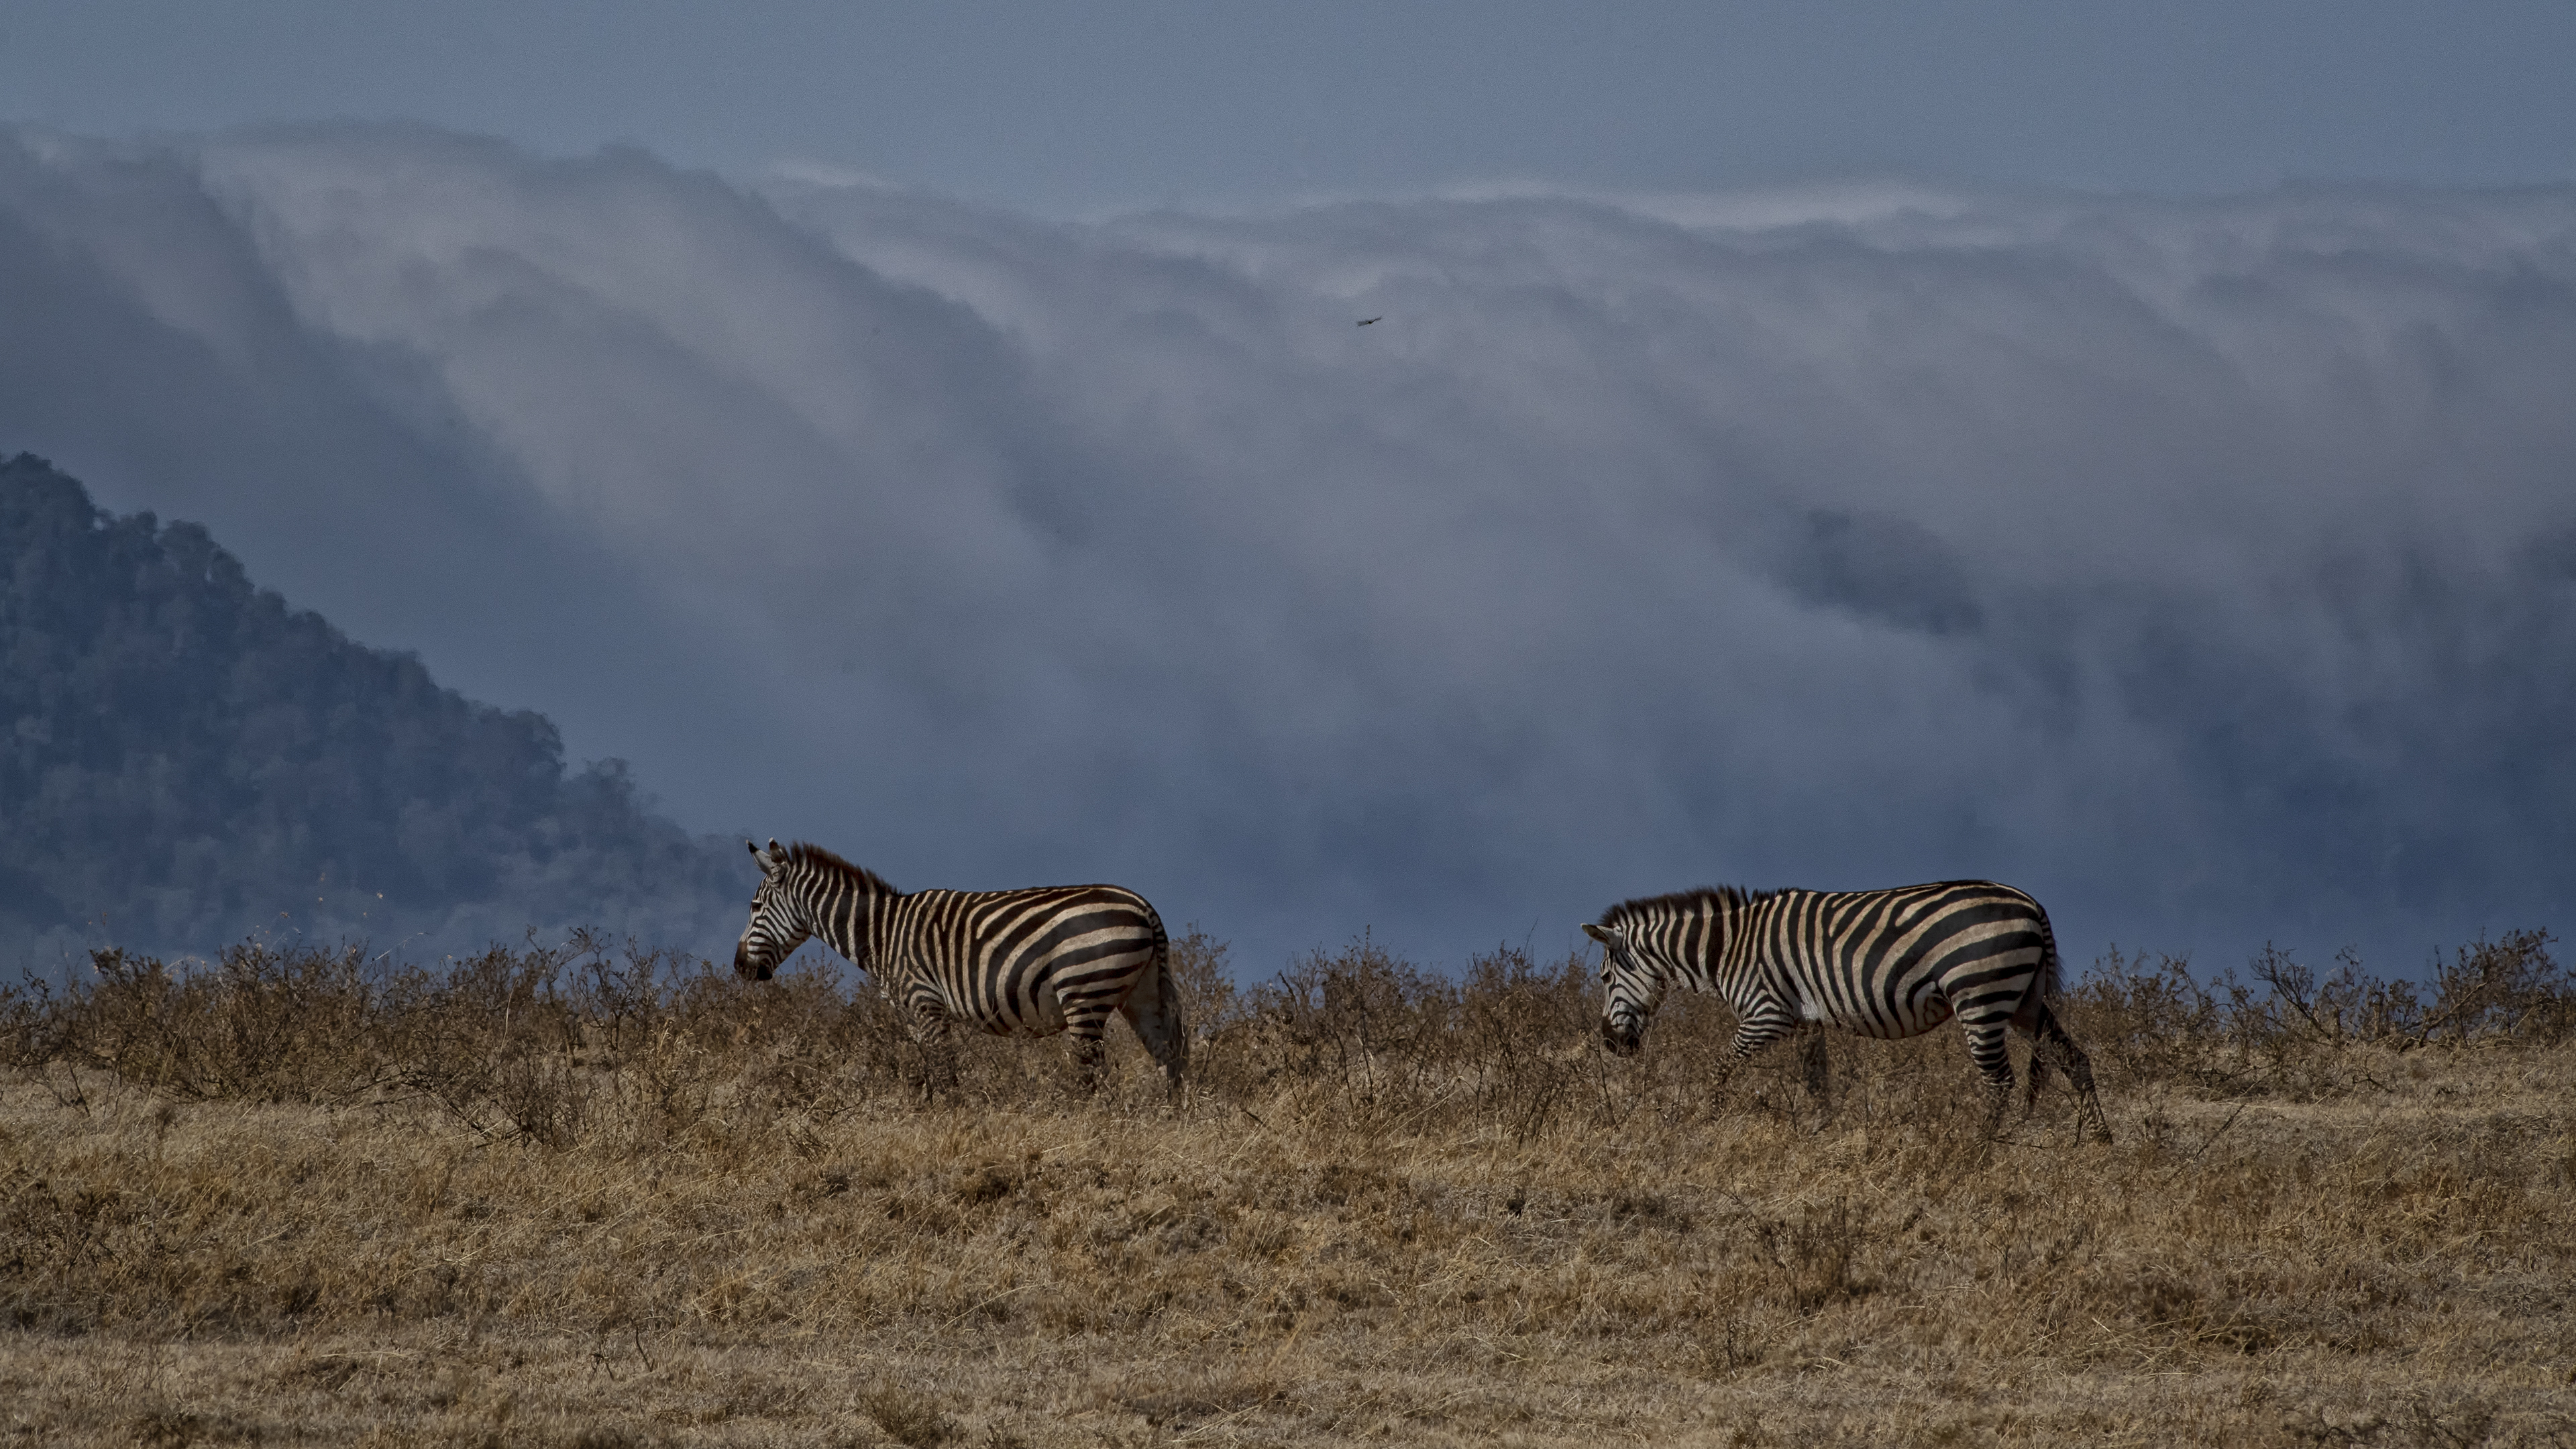 Zebras with Fog